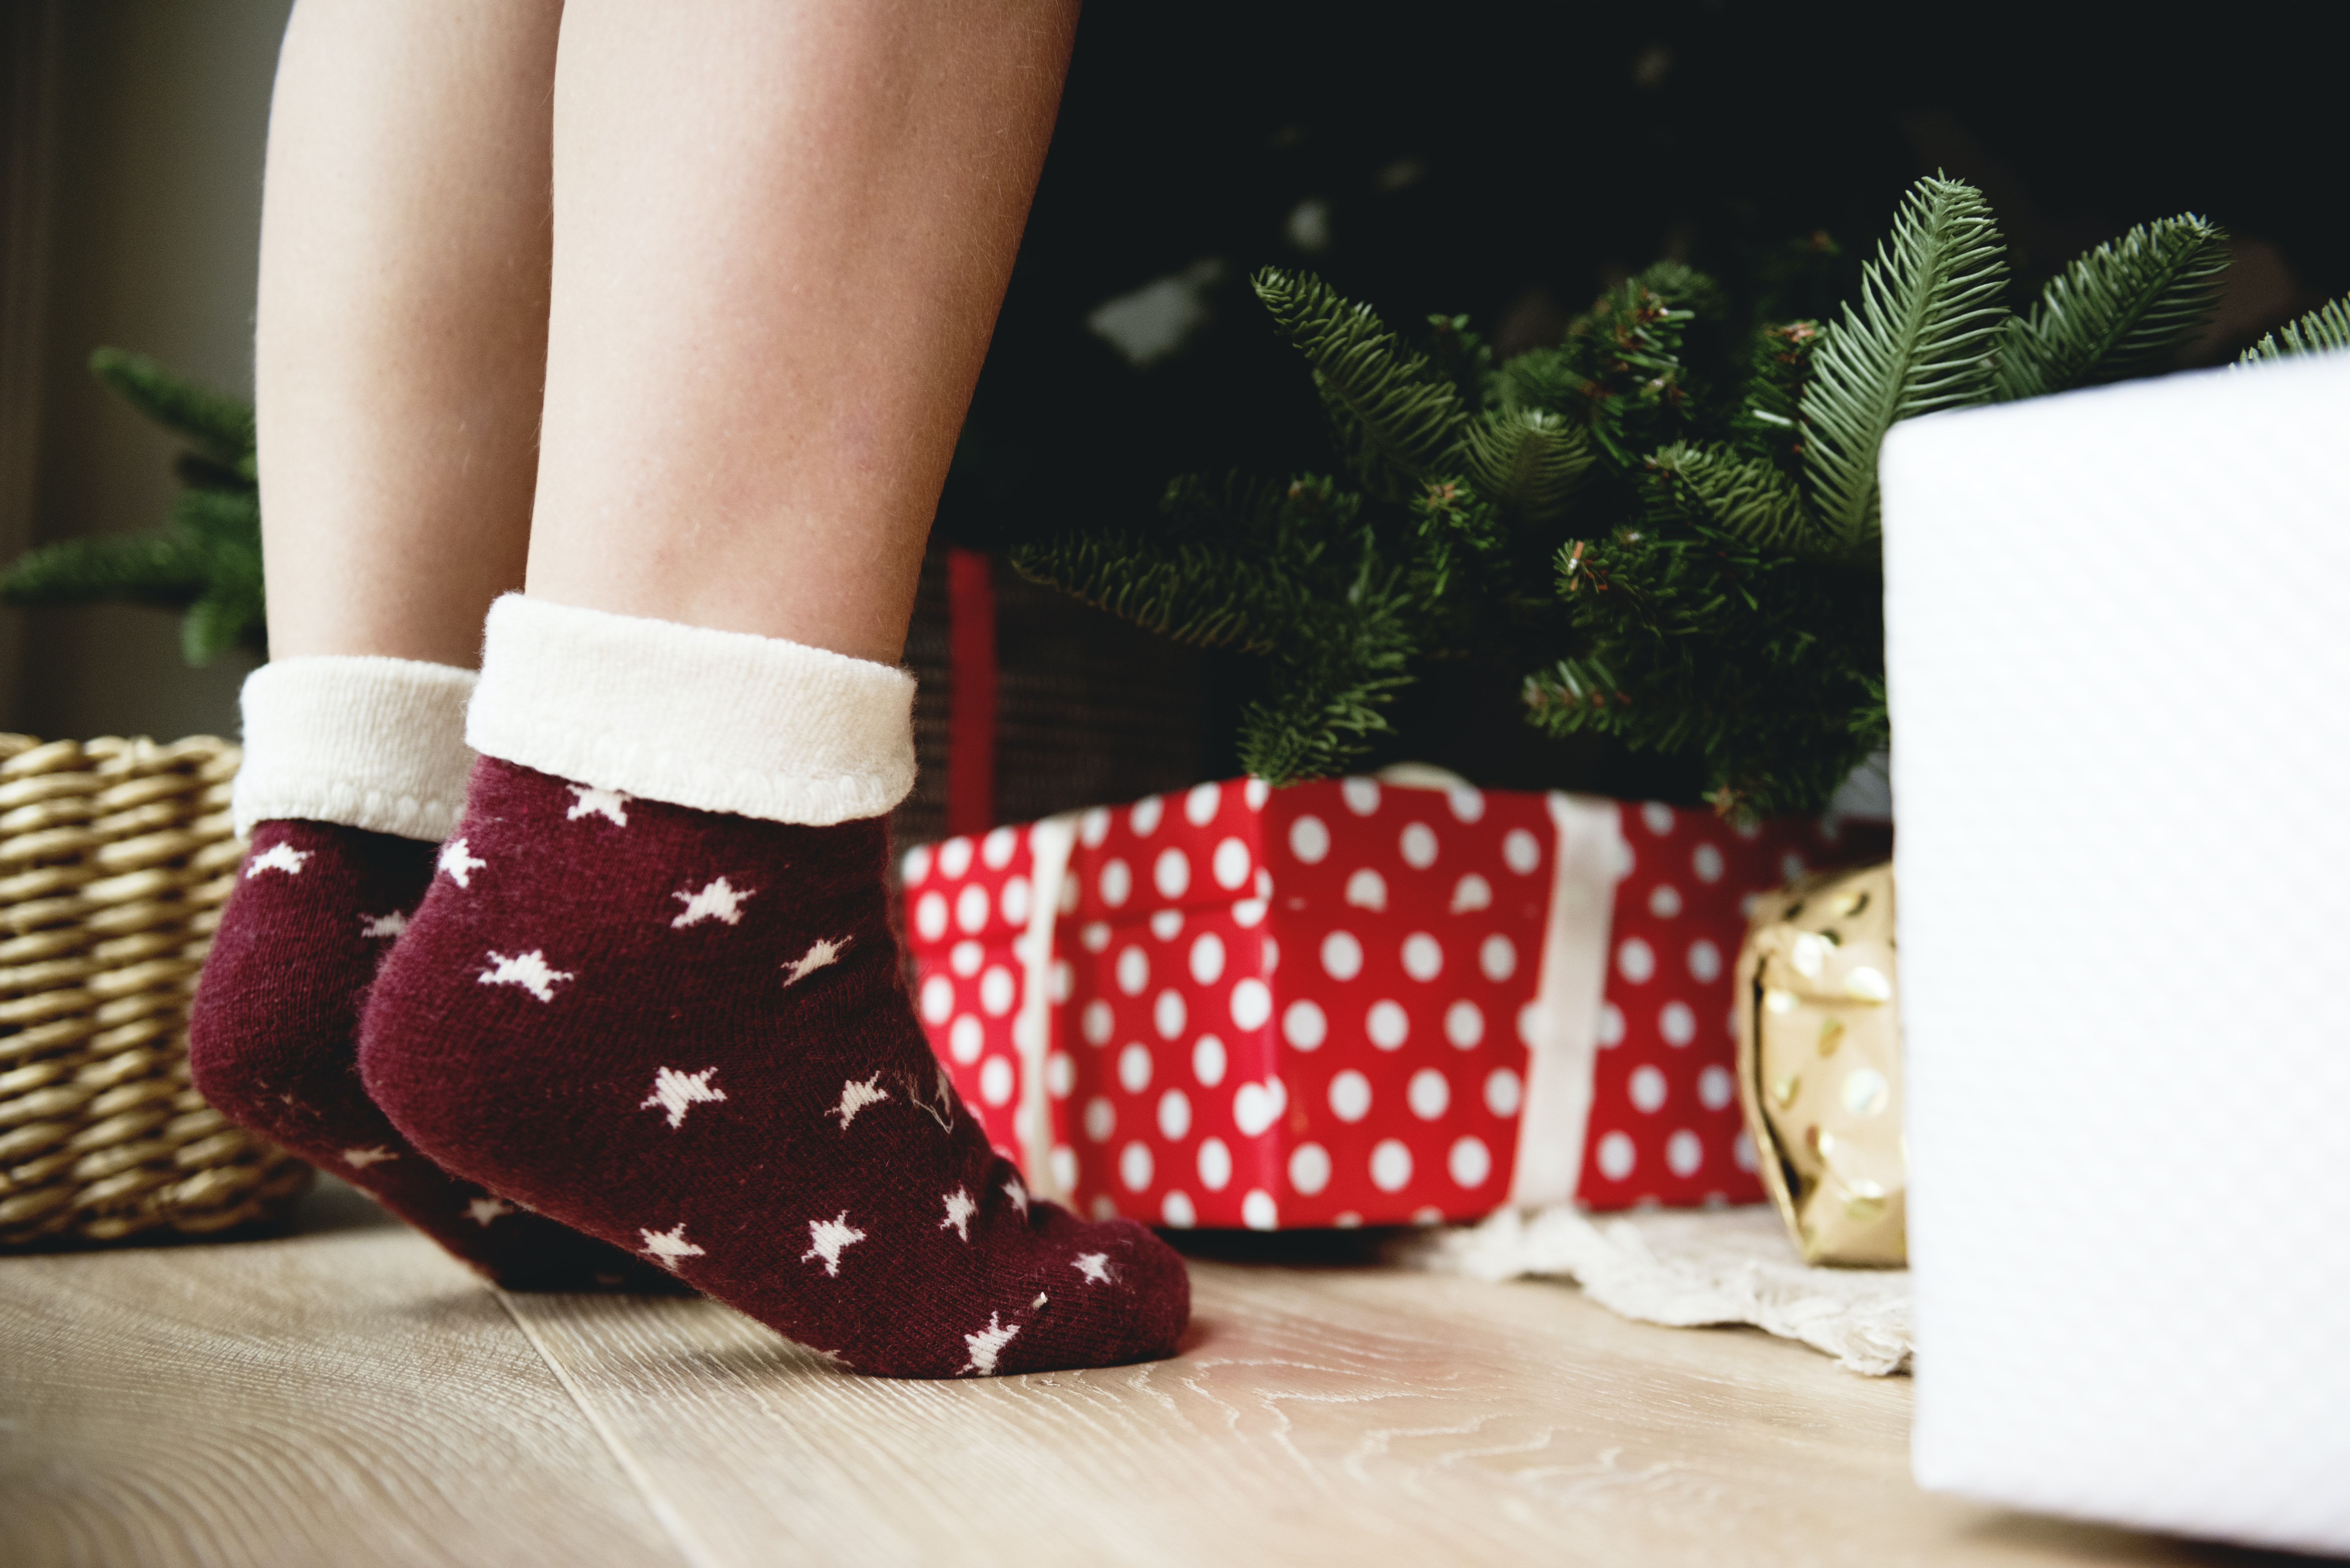 person wearing red-and-white star print socks